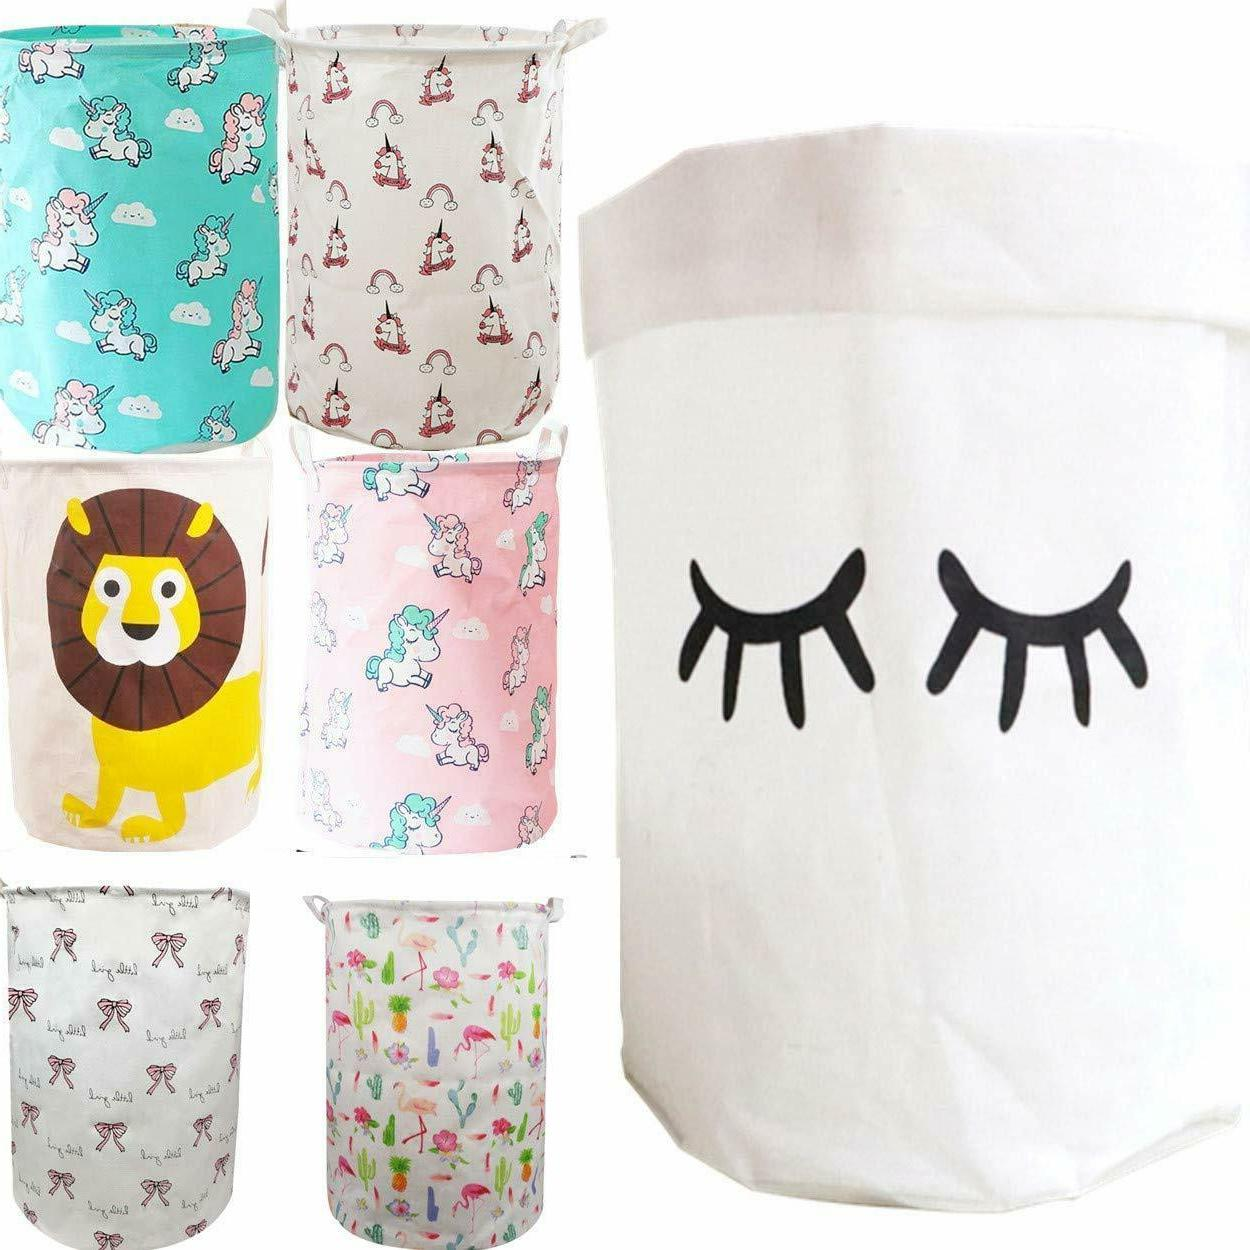 Laundry Hampers Canvas Bin With Clothes